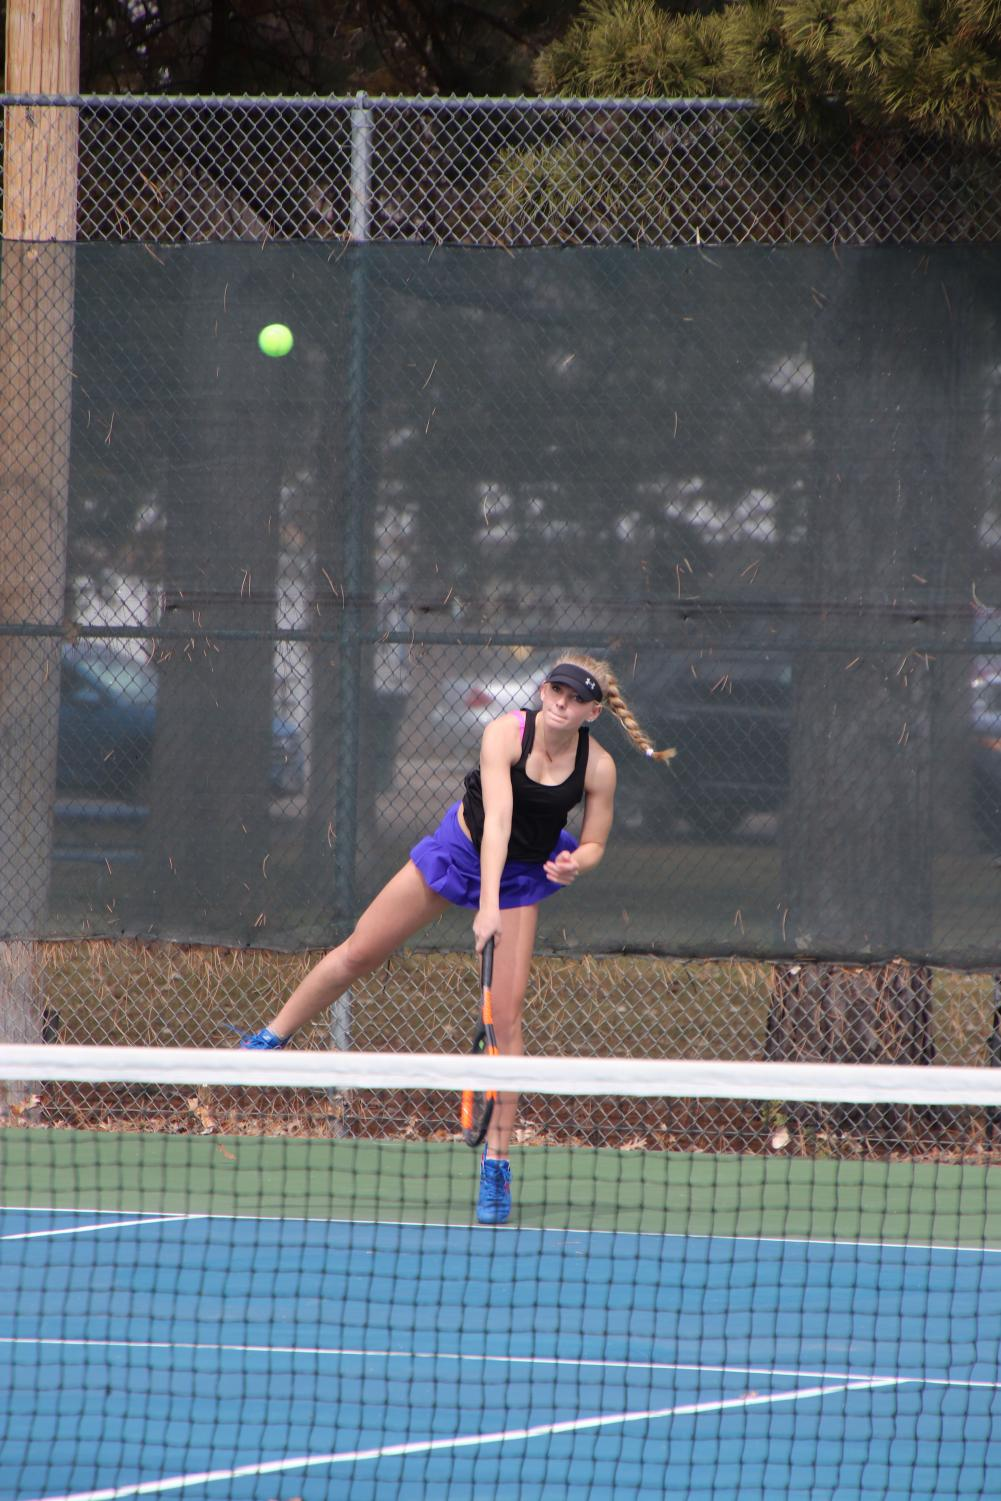 Senior Codi Guerrieri hits her first serve against Hershey on March 26. North Platte placed second as a team in this home meet.